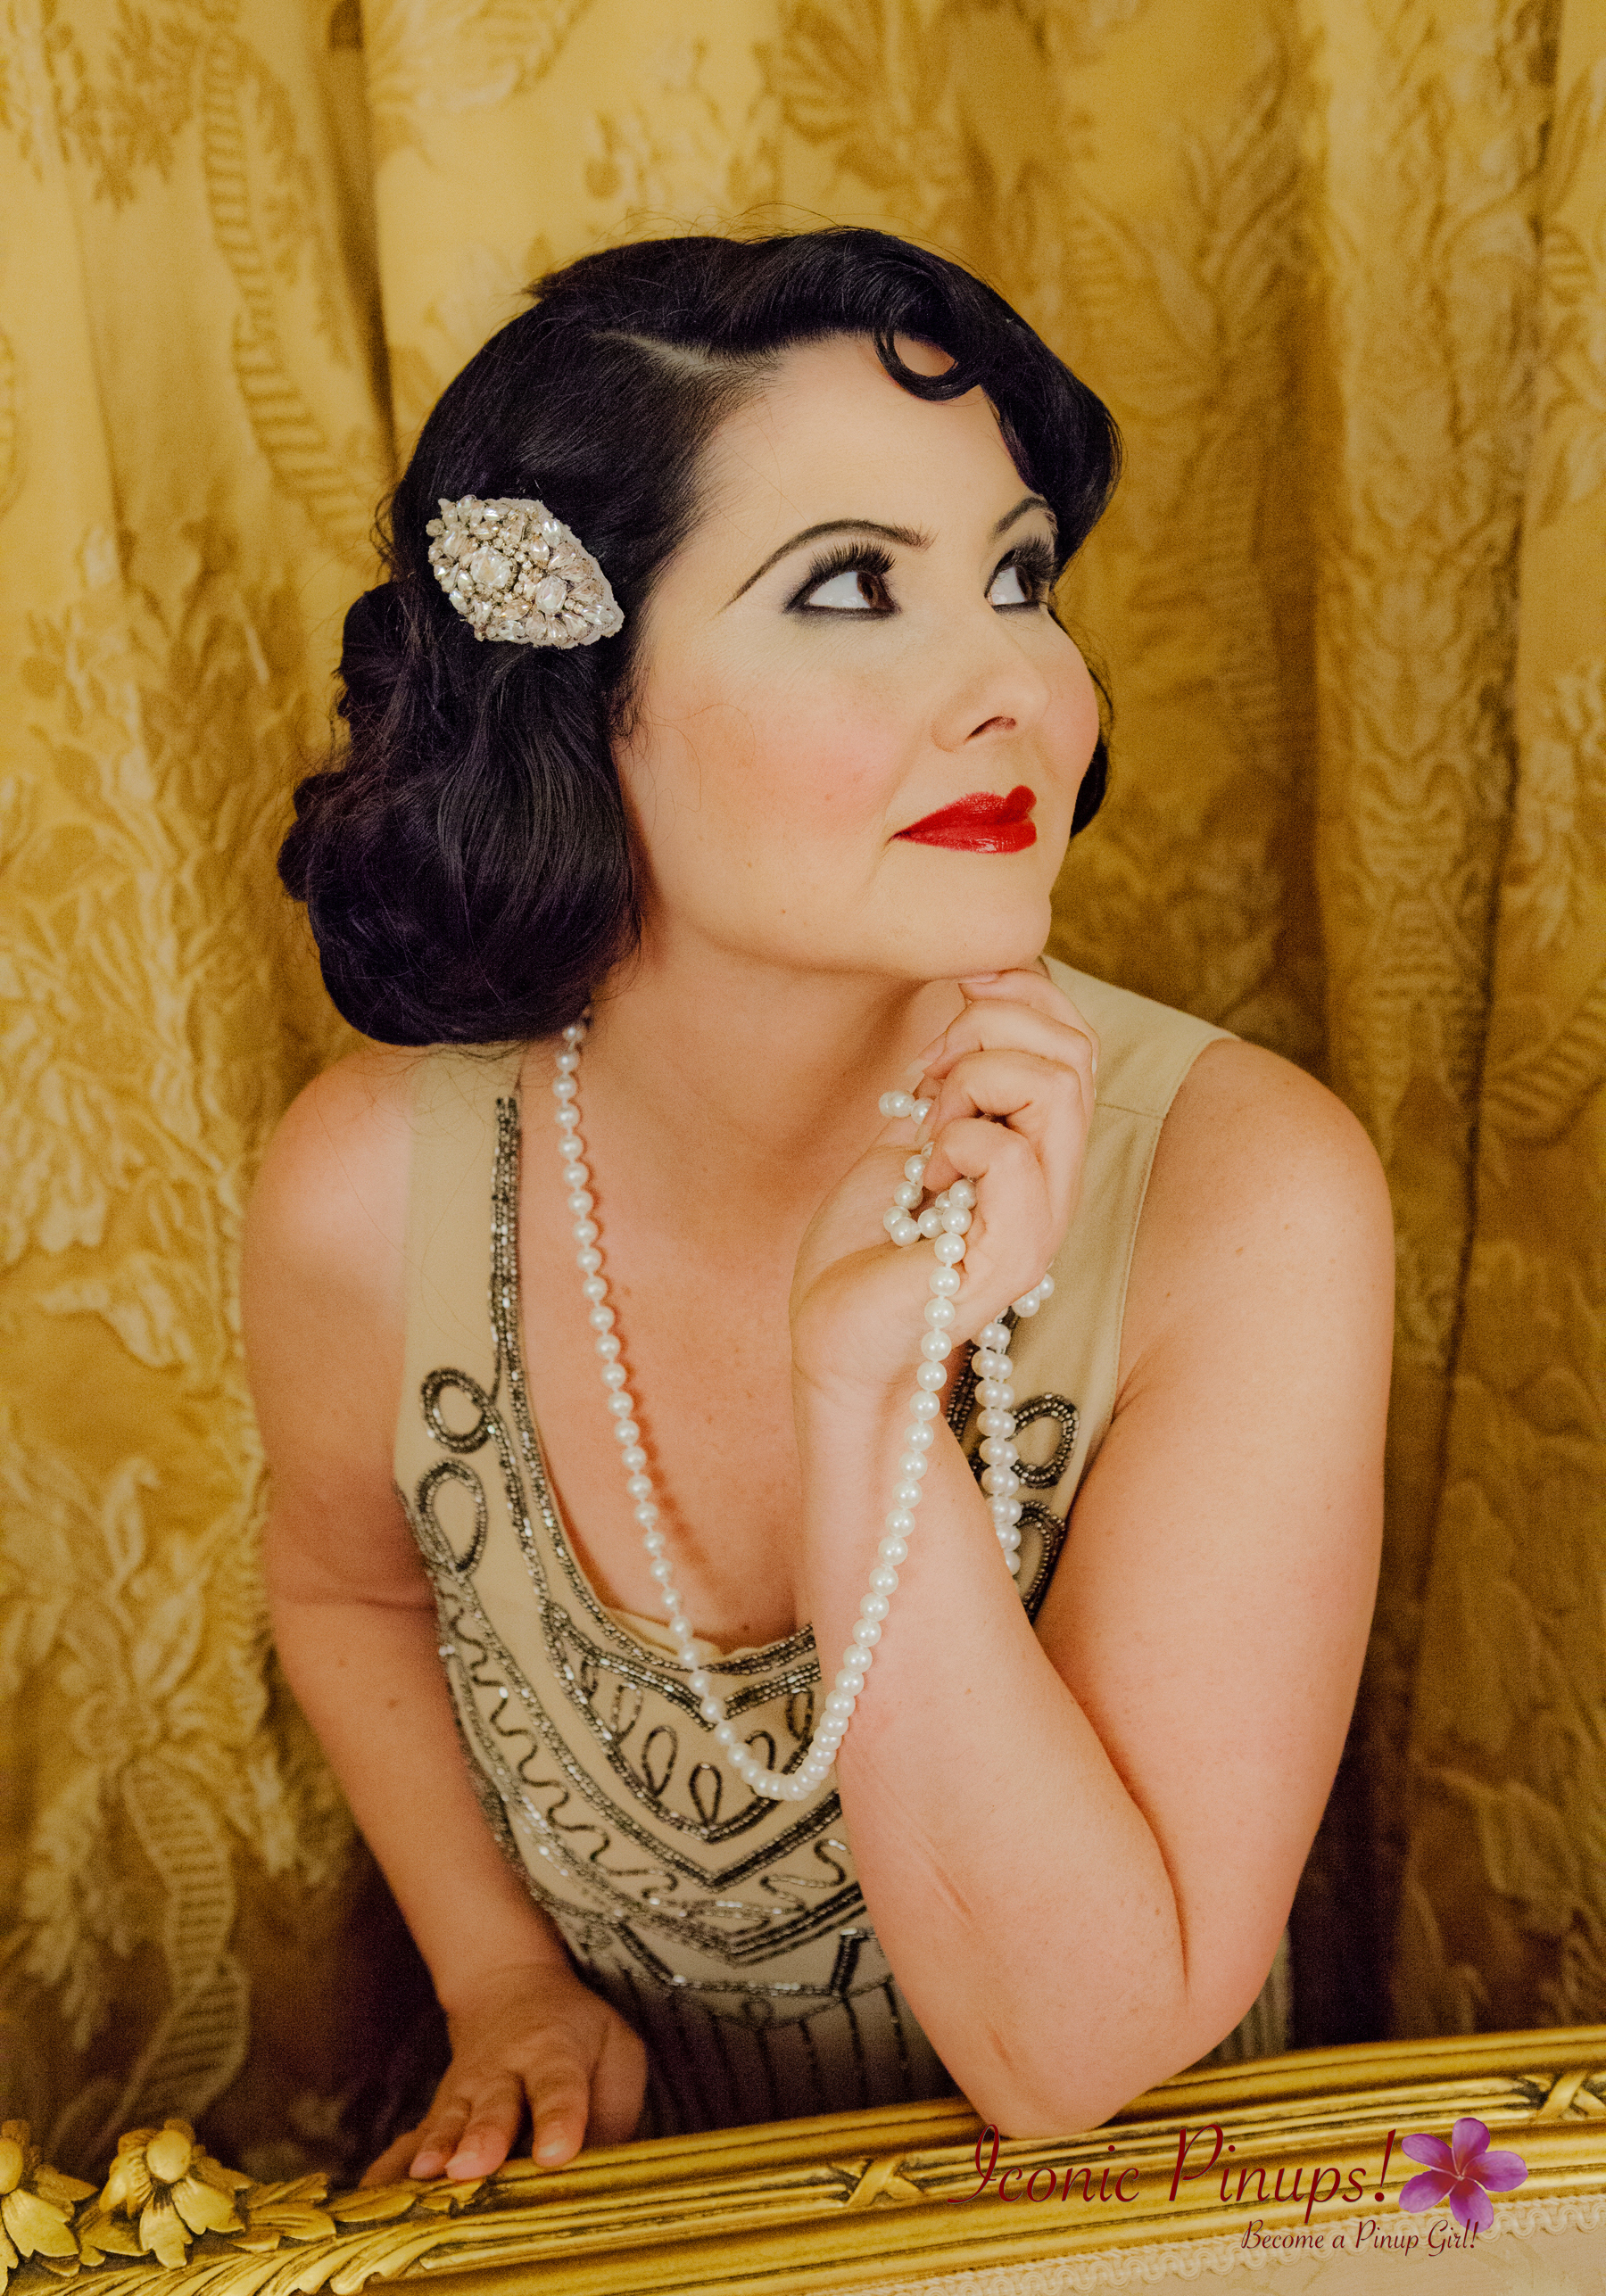 Los Angeles Great Gatsby Photo Shoot 1920s Style Photography And